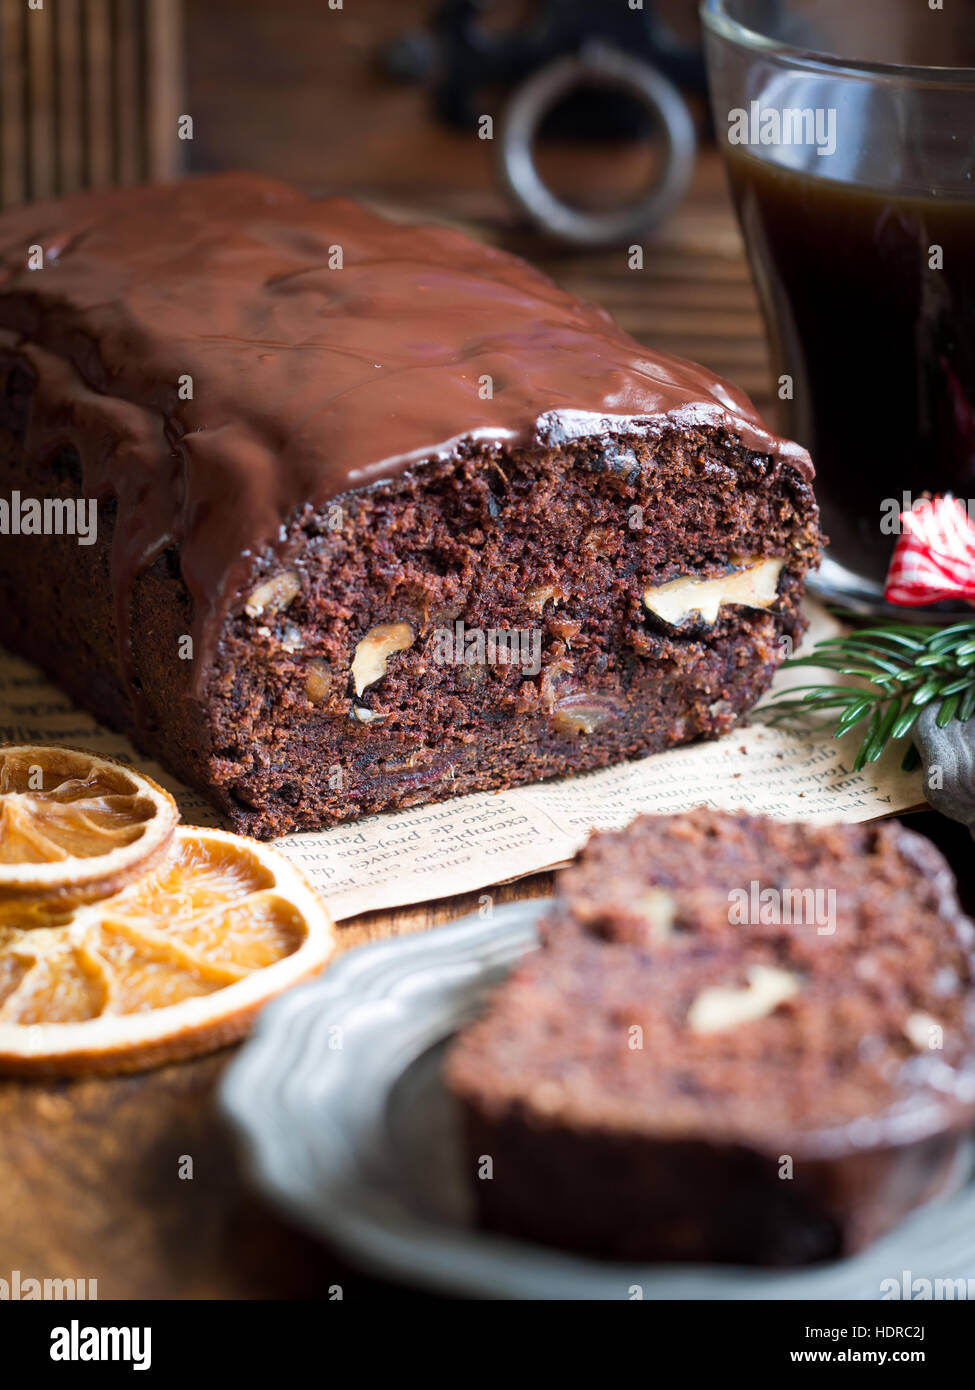 Gluten-free gingerbread made with green banana flour, dates and nuts. Stock Photo